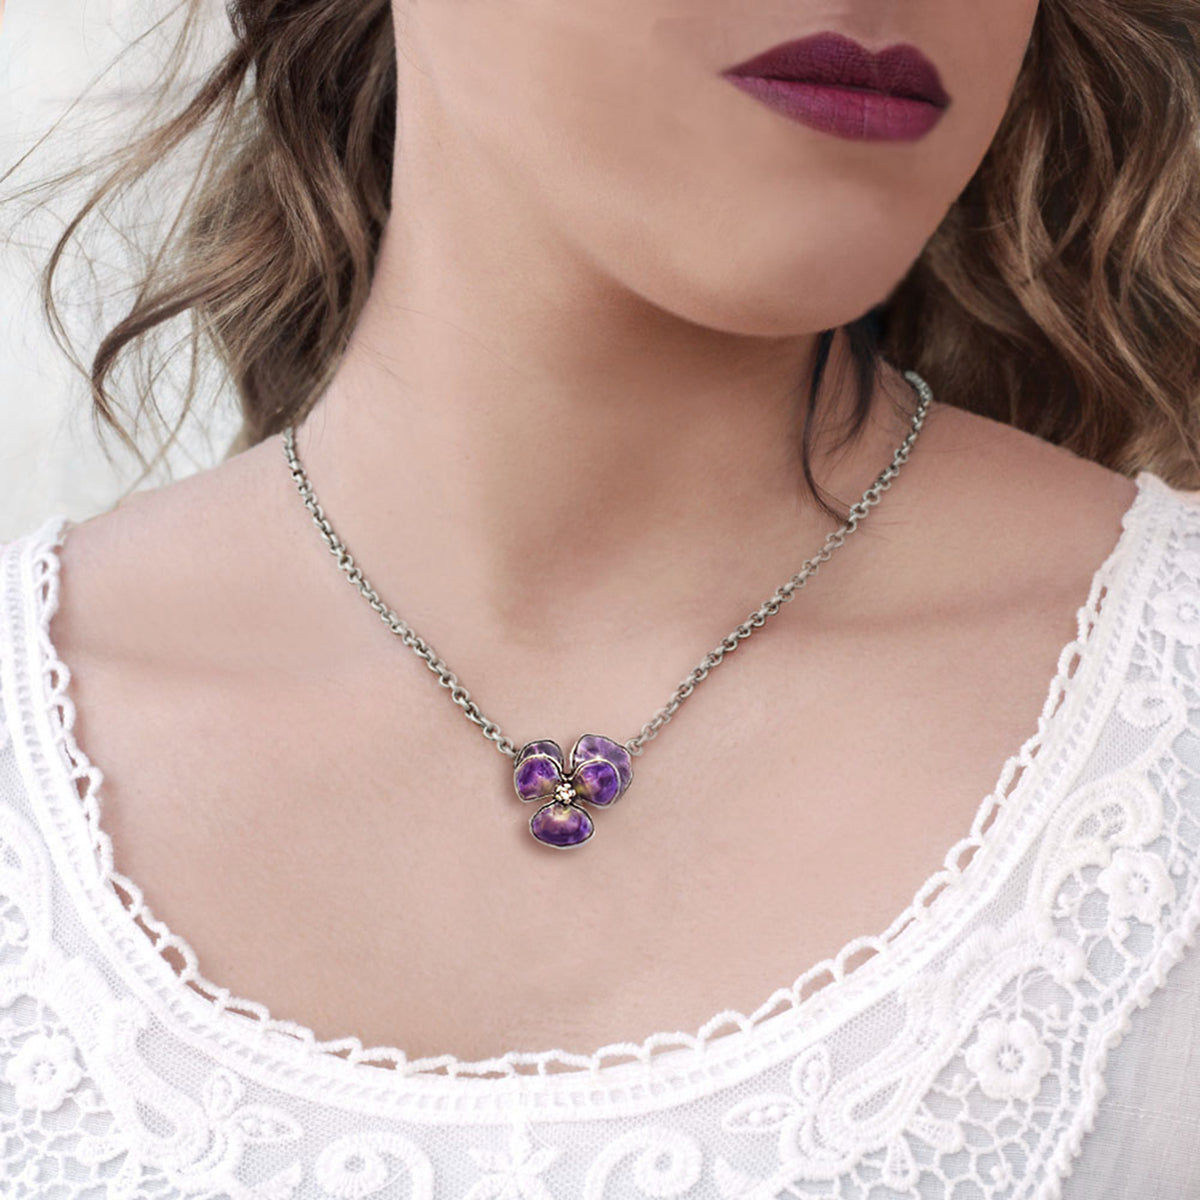 Vintage Enamel Pansy Necklace N1590